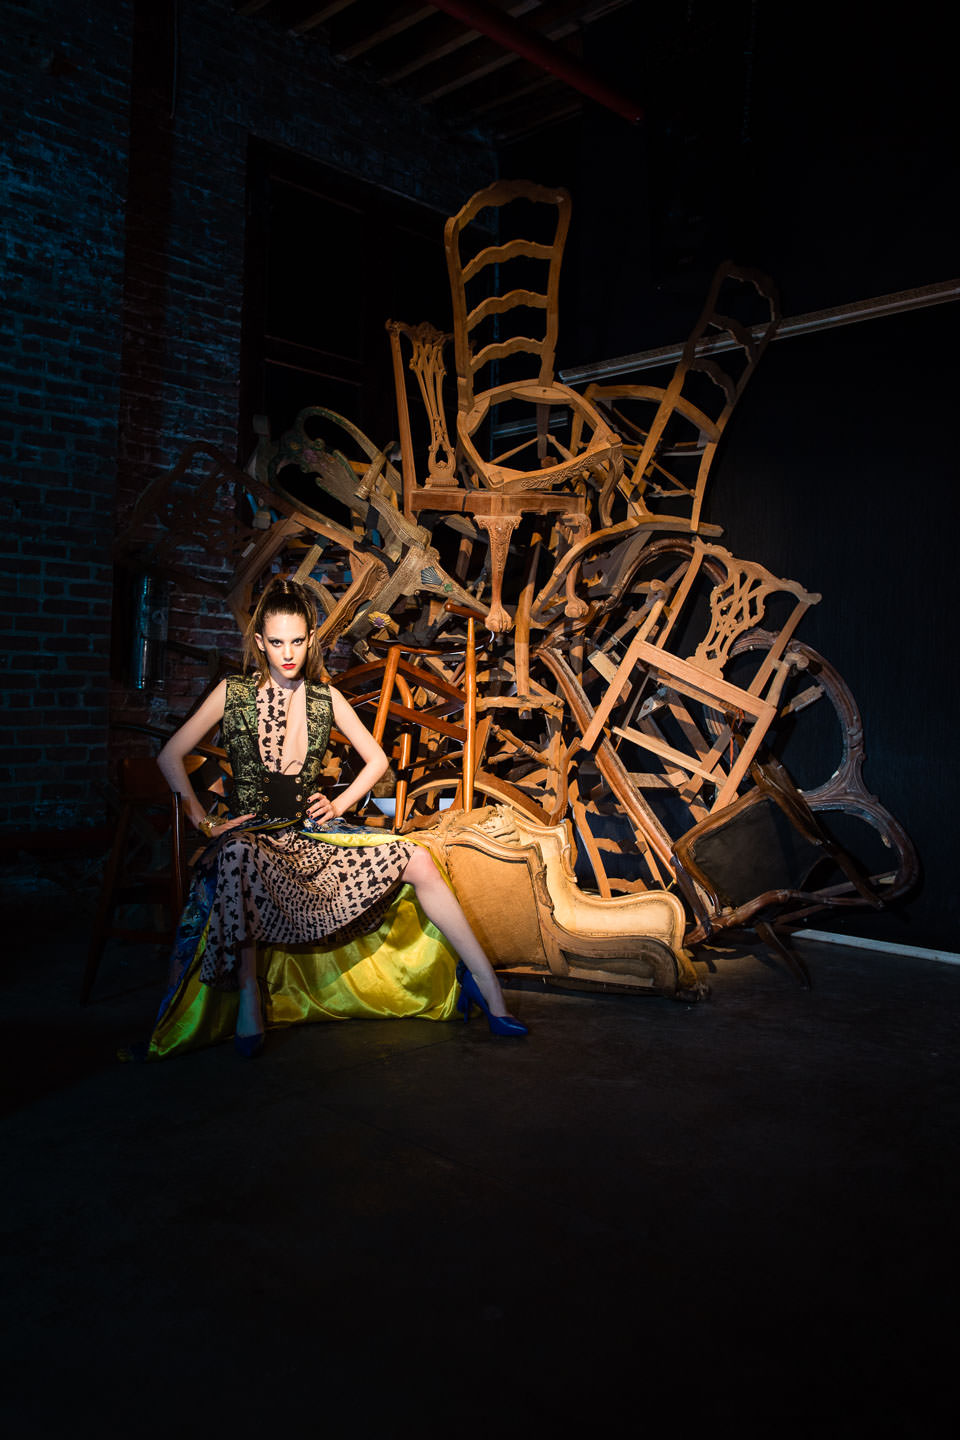 model sitting next to creative stack of chairs at monaliza studios in brooklyn ny editorial night